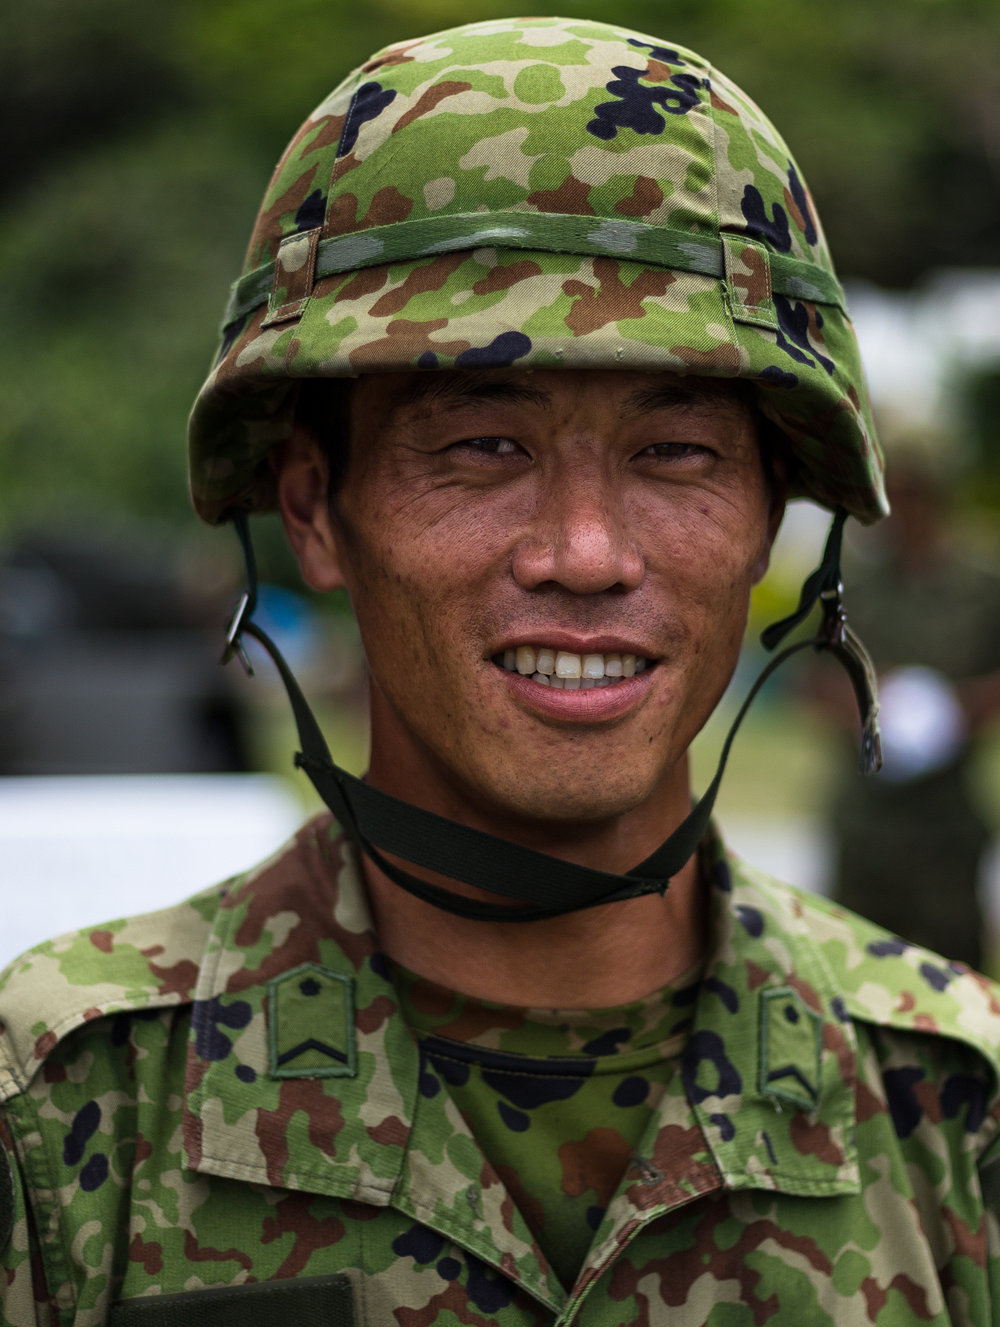 An unknow private with the JGSDF poses for a shot while at a local recruiting event. Private, 15th Brigade, Japan Ground Self-Defense Force, Naha AB, Okinawa, Japan